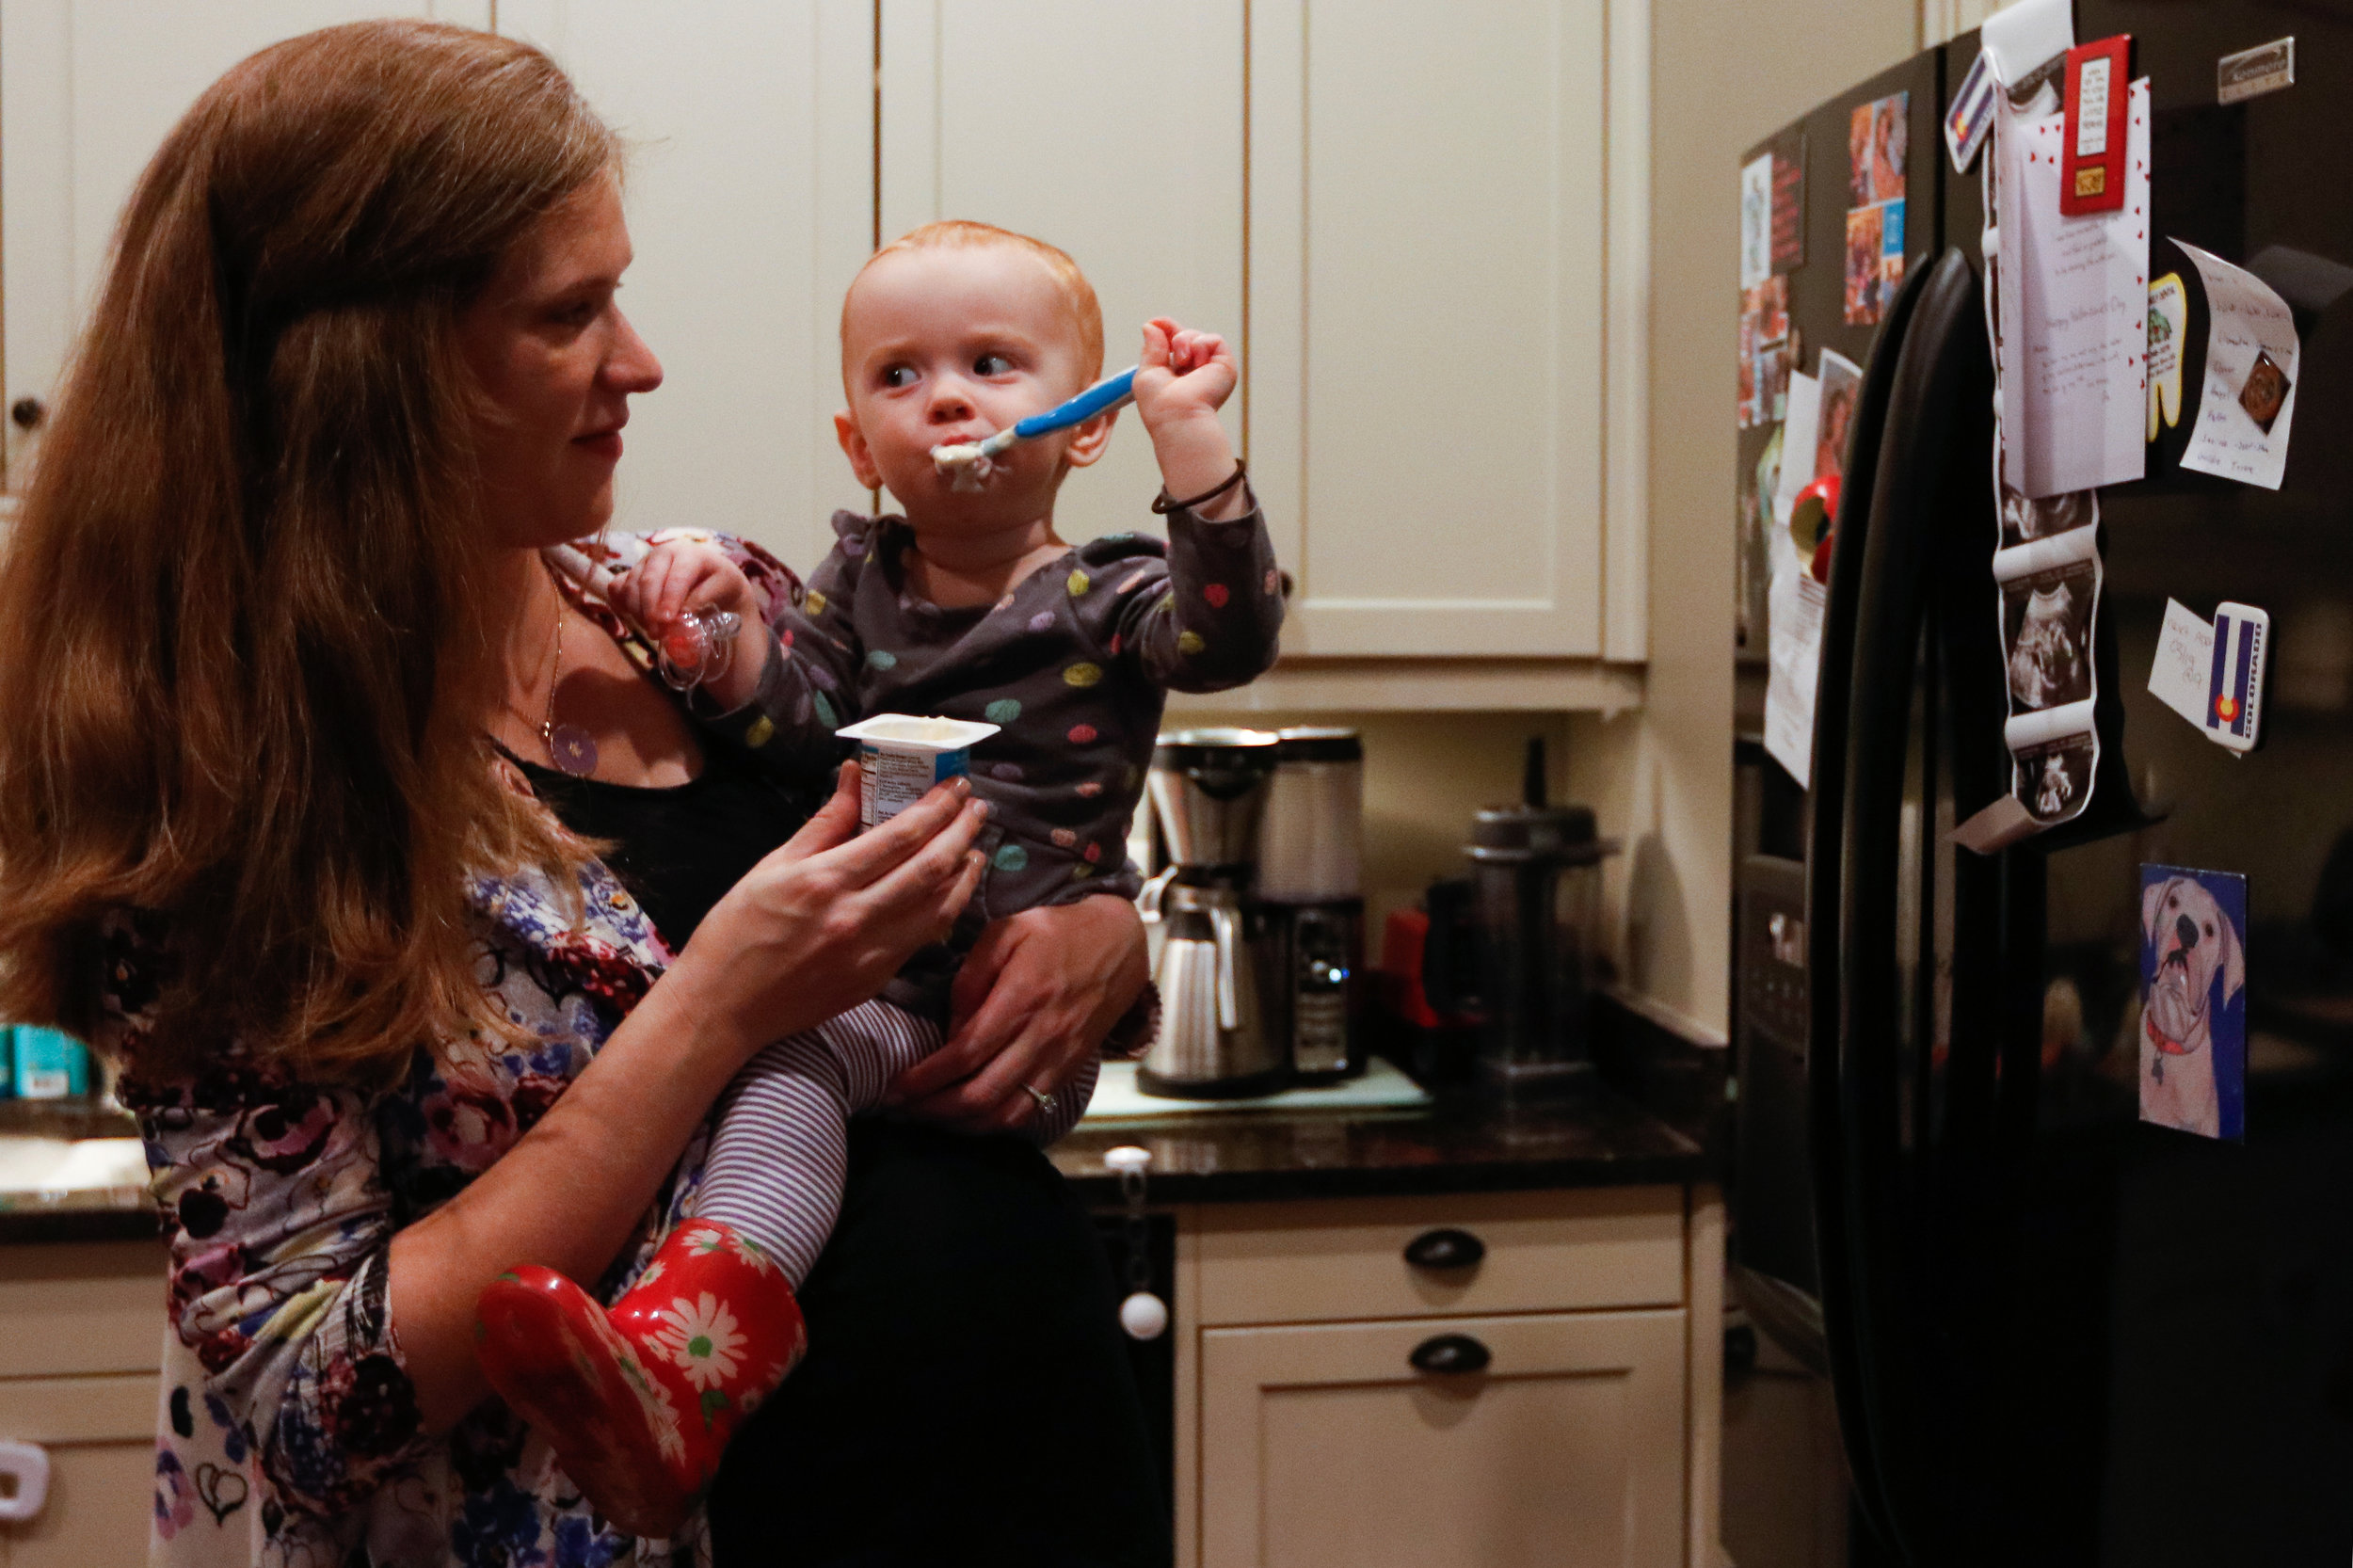 Juniper Zareie, 18 months, eats yogurt in her Athens, Georgia, home while mom Melanie stands by on March 19, 2018.